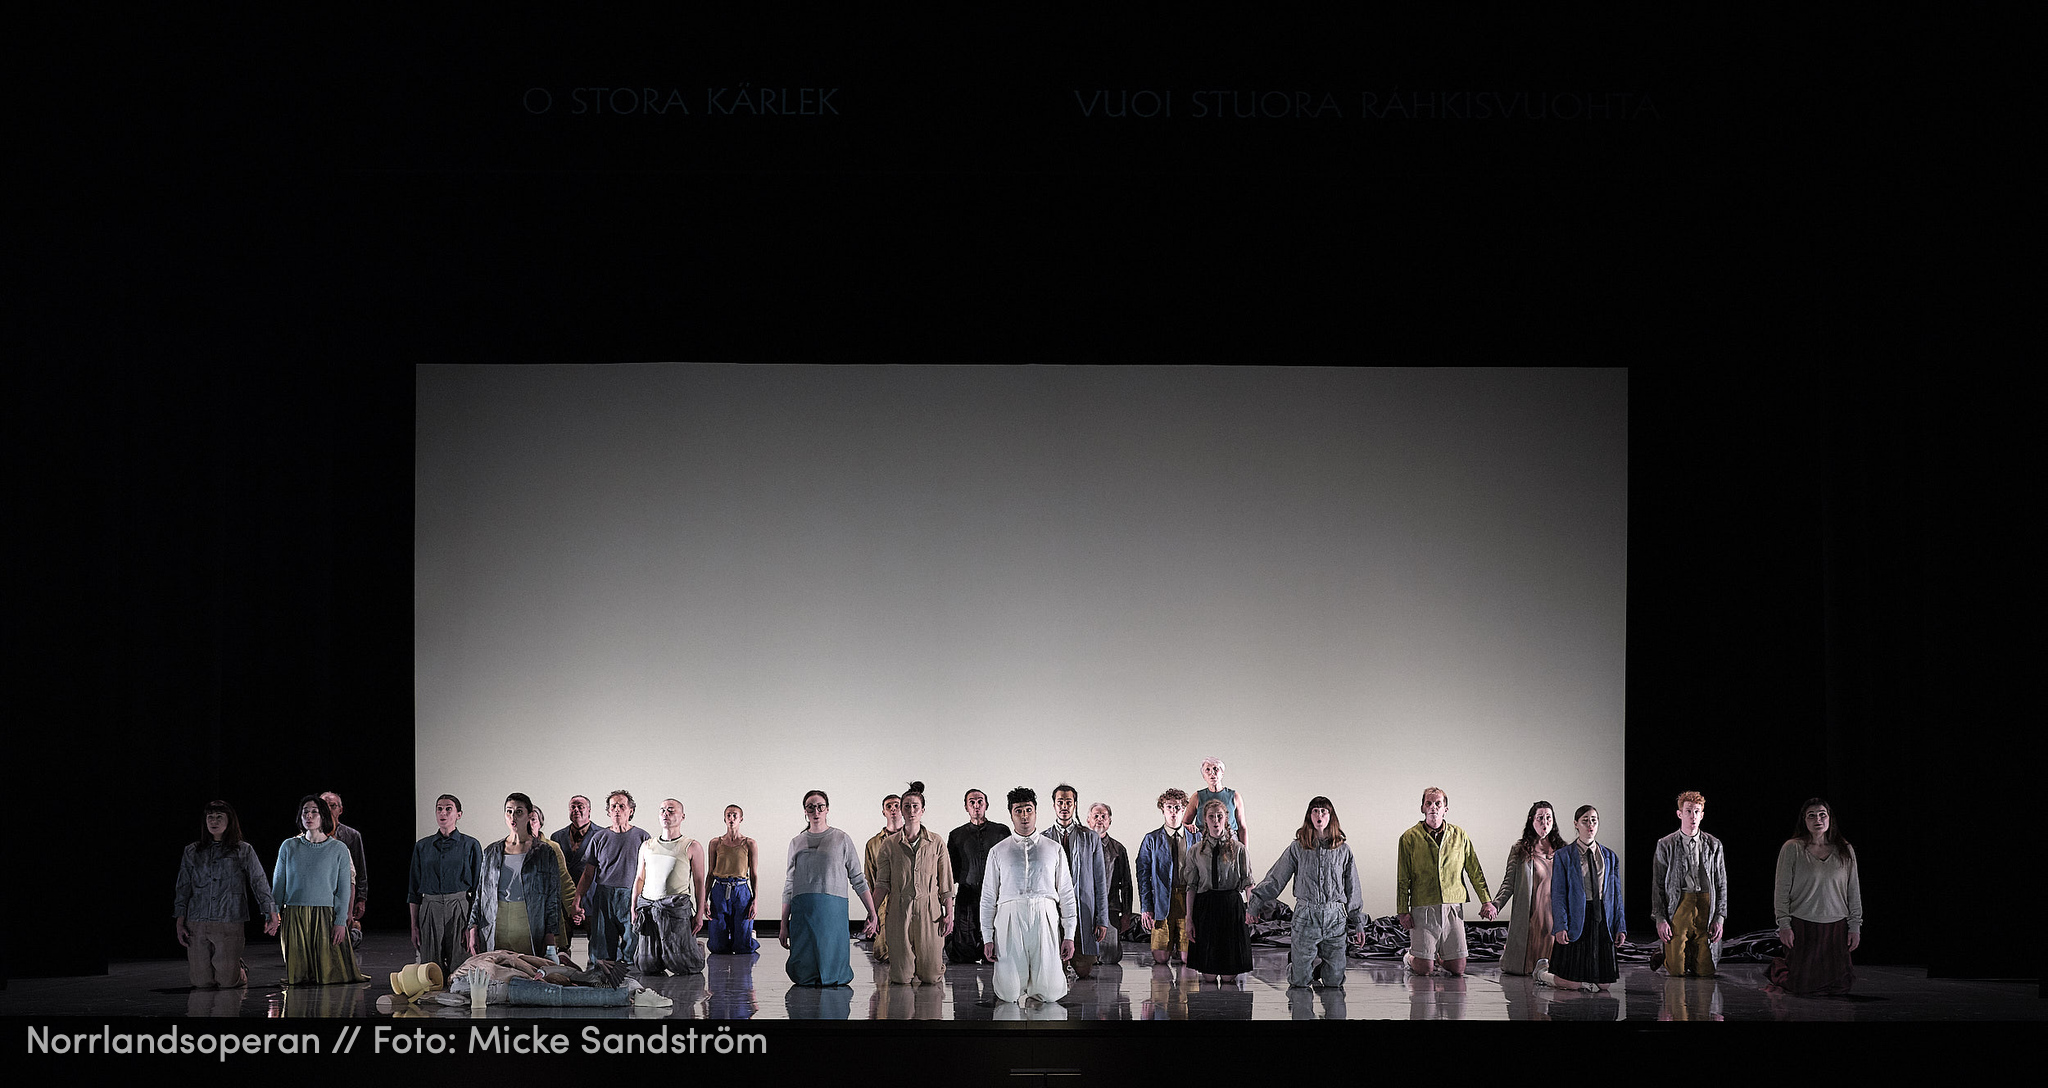 WE - An unknown opera by Bach?